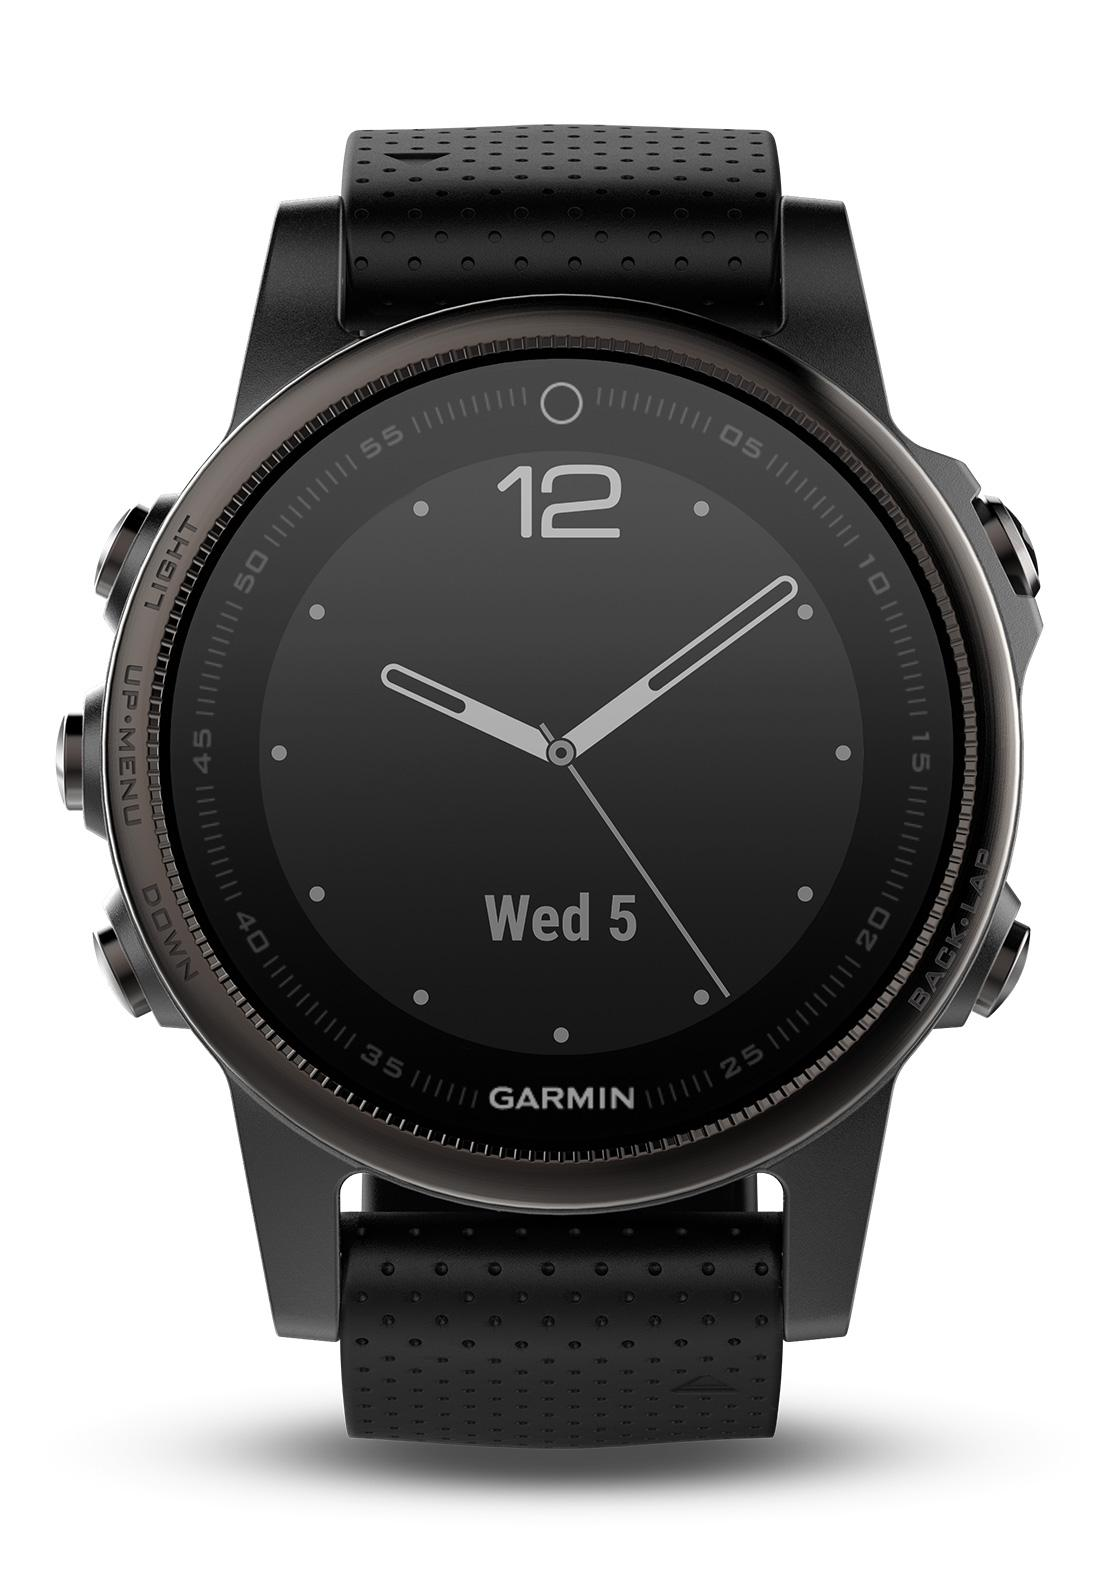 garmin fenix 5s saphir schwarz gps multisport smartwatch. Black Bedroom Furniture Sets. Home Design Ideas